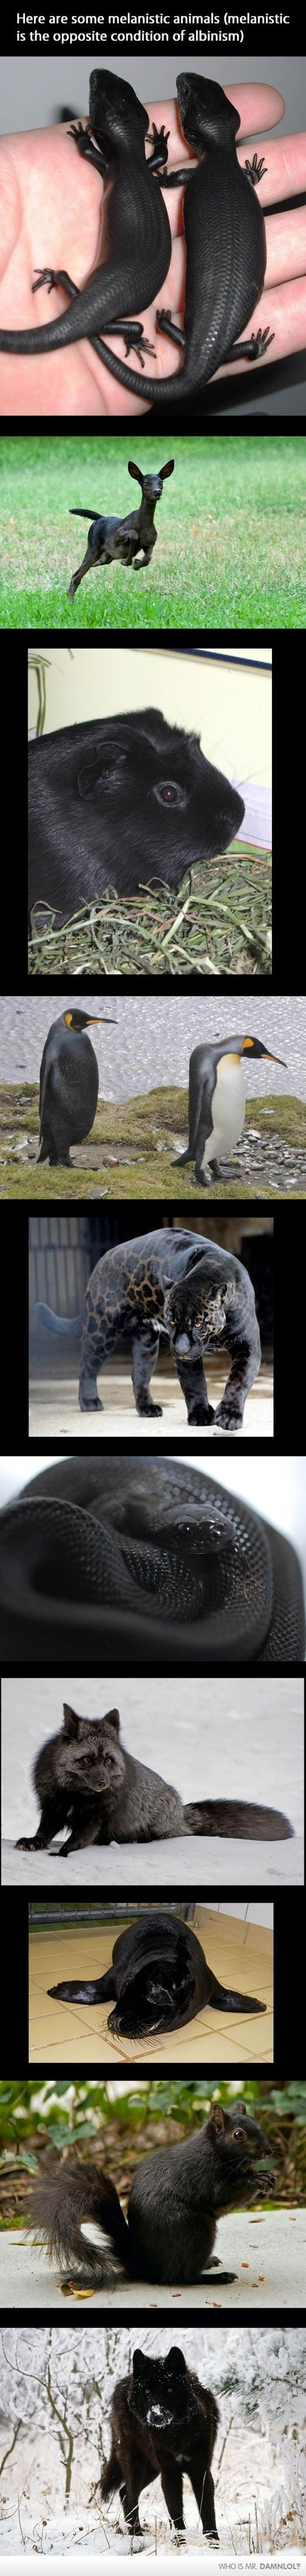 Melanism - When the body produces too much Melanin instead of too little. The opposite of Albinism. Ahh! I love the skinks! So adorbs!